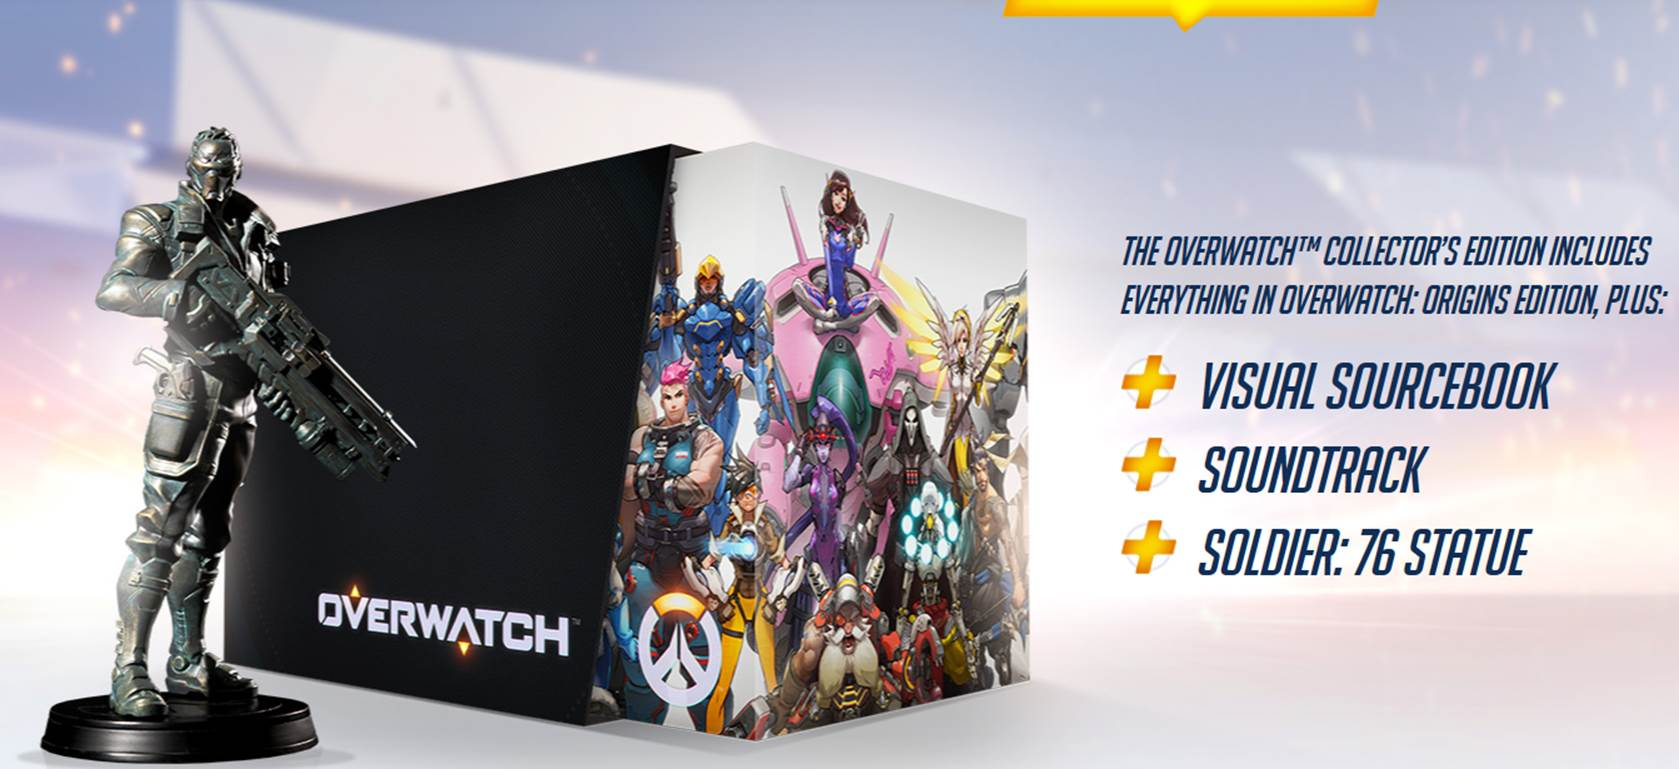 *OVERWATCH COLLECTOR'S EDITION GIVEAWAY WINNER*